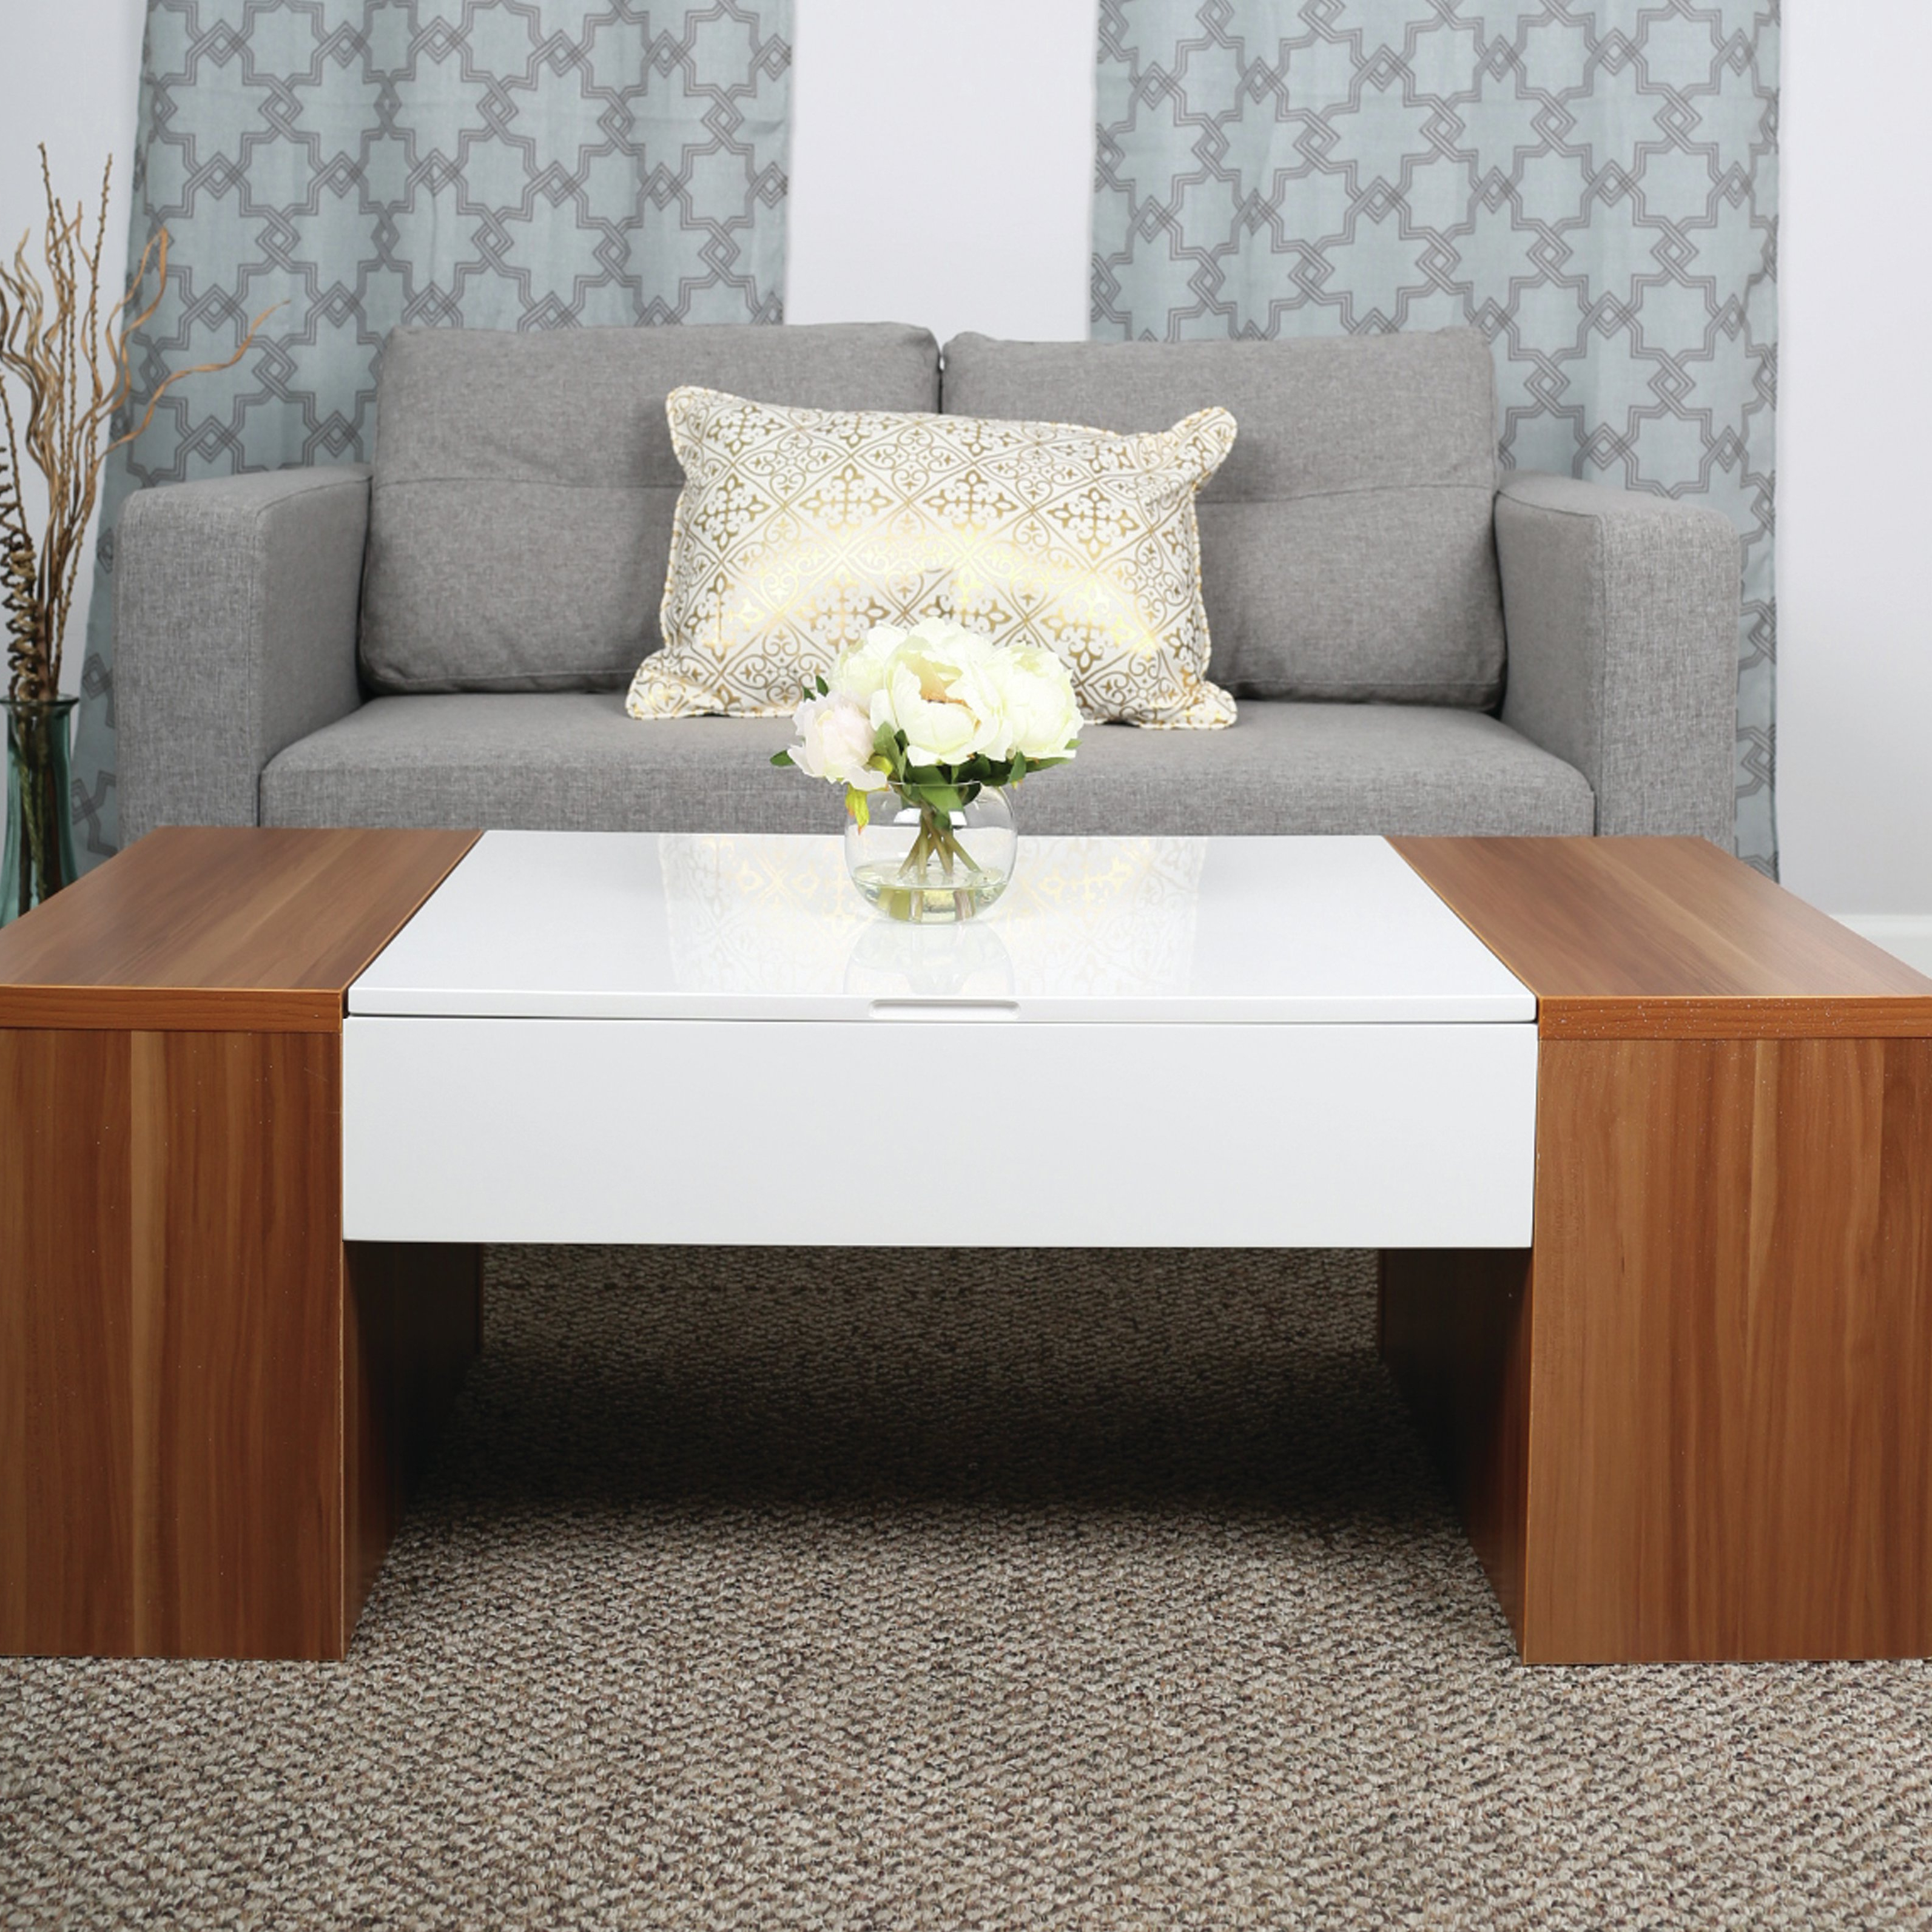 Stack Hi Gloss Wood Coffee Tables Regarding Fashionable Mix Lift Top Coffee Table & Reviews (View 14 of 20)